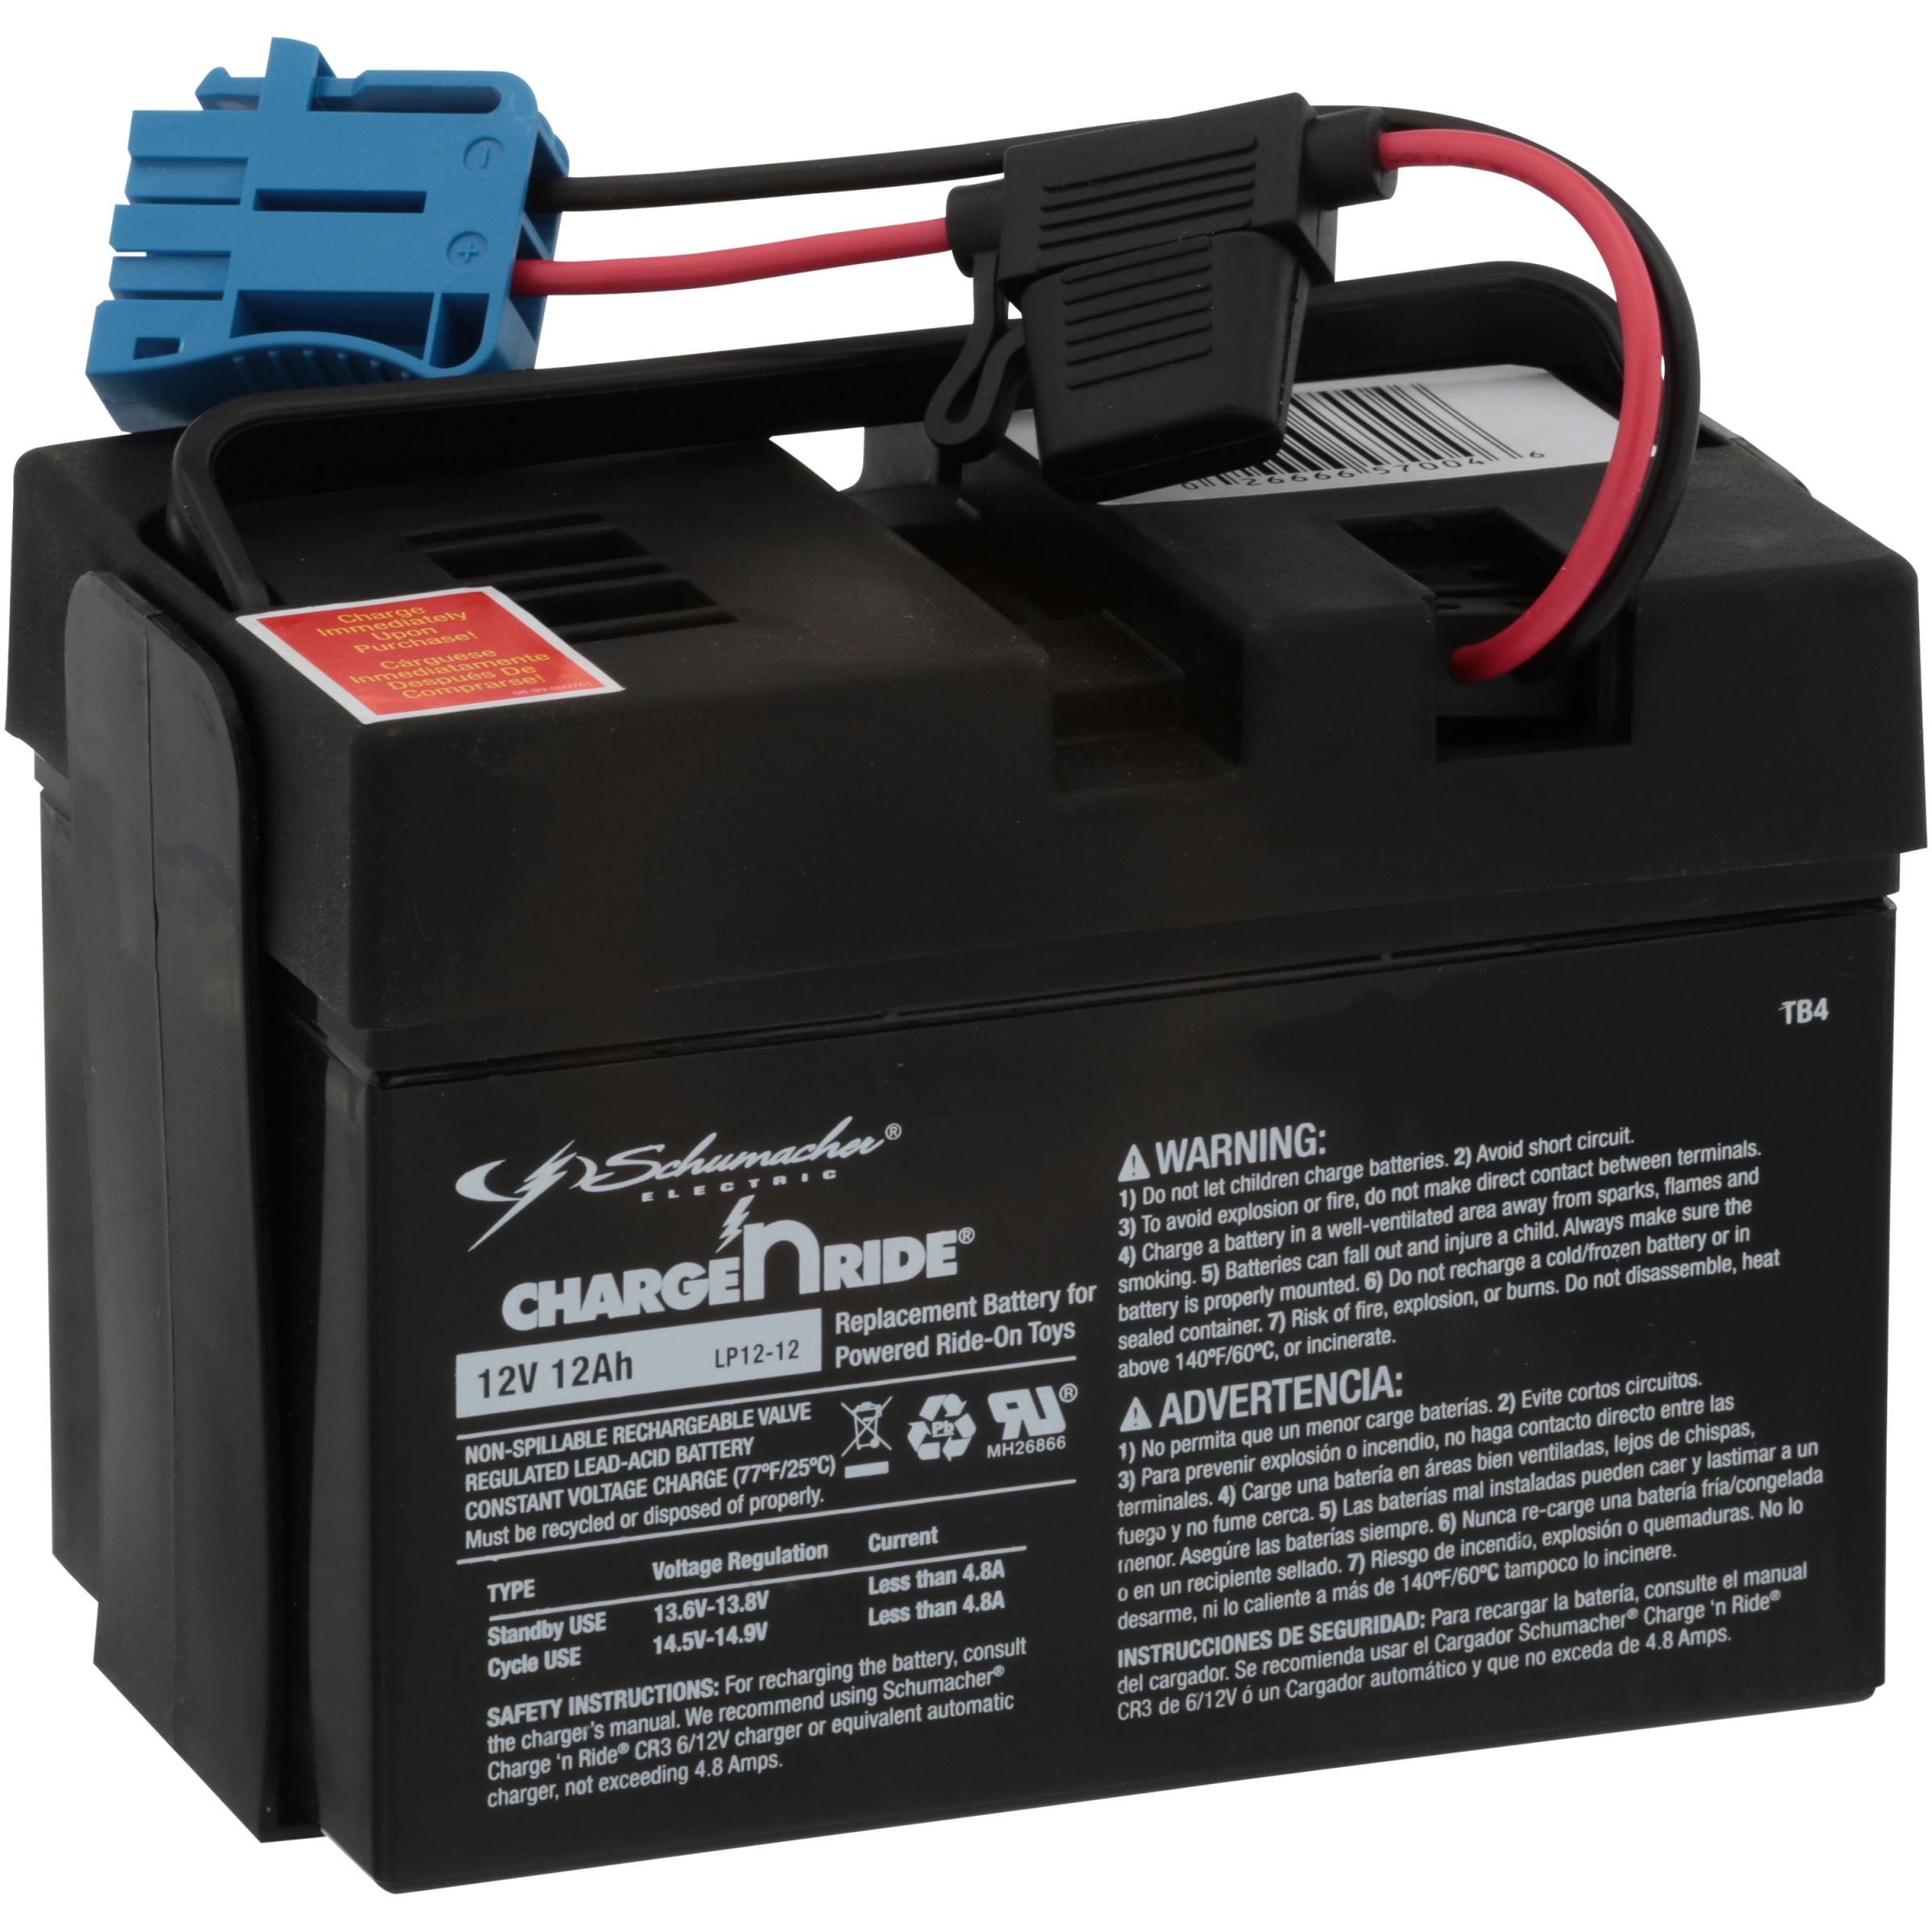 Schumacher® Charge n Ride® TB4 Rechargeable Replacement Battery